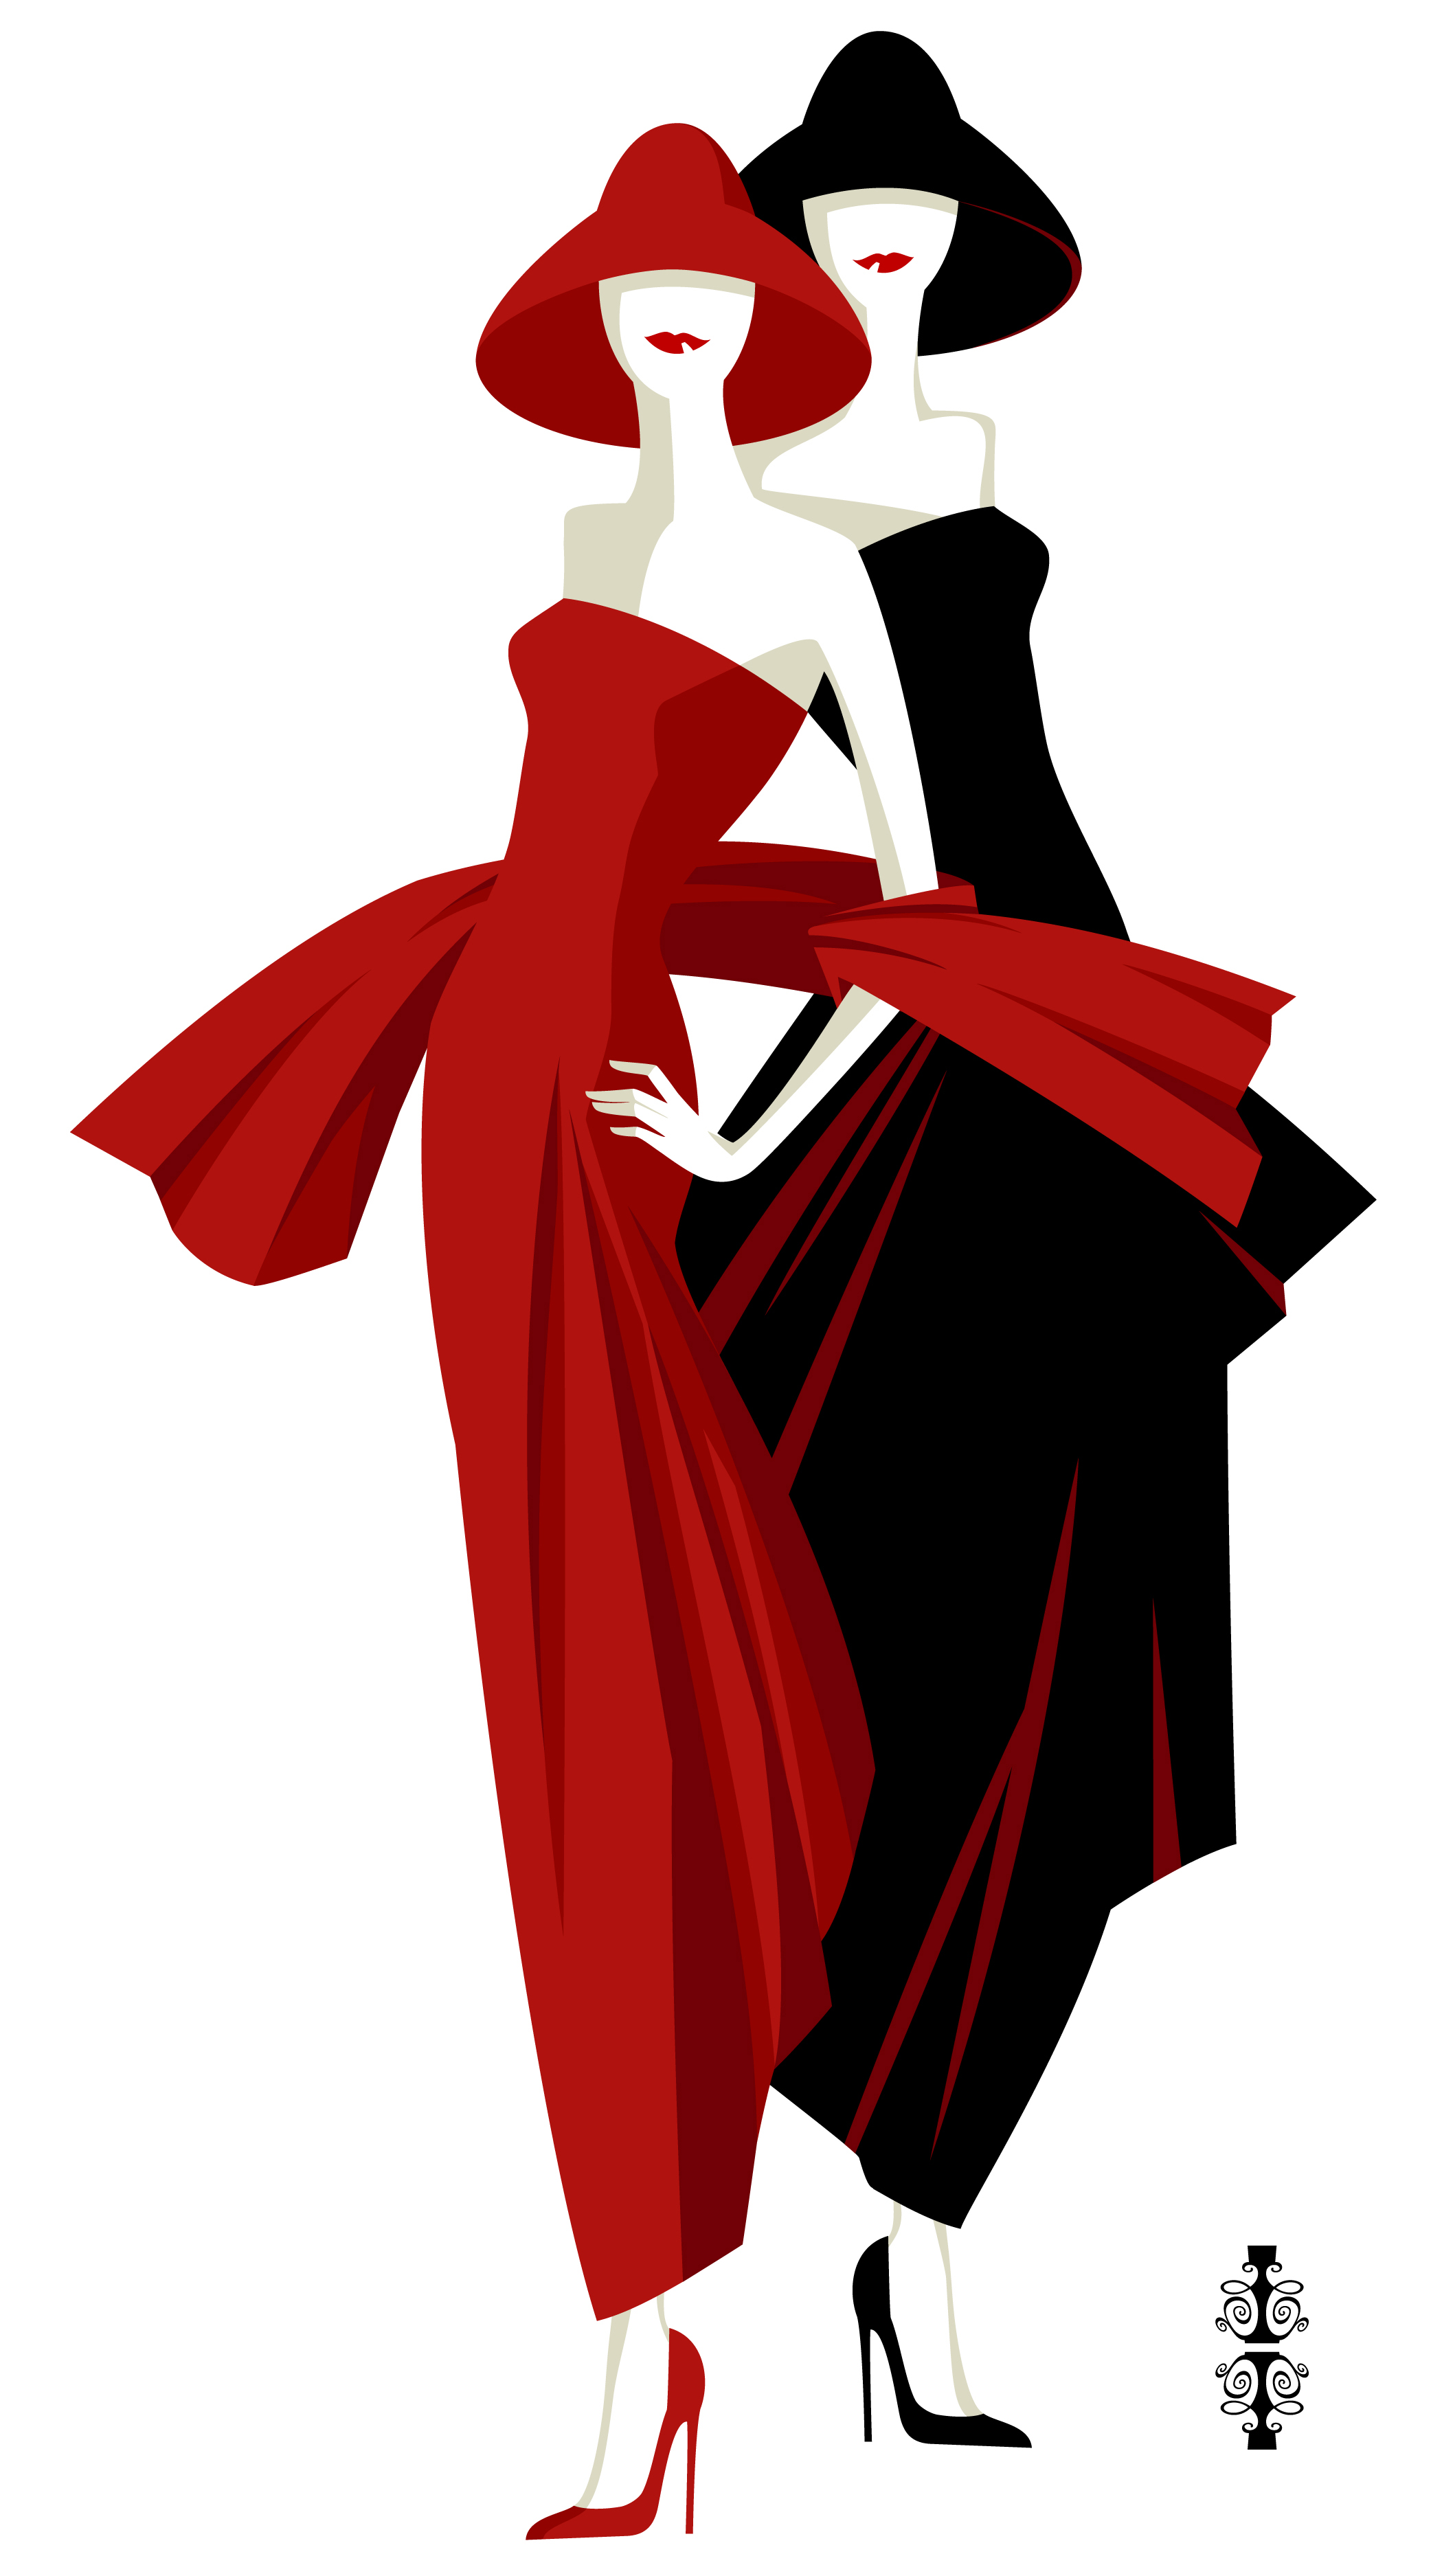 fashionable women in a black and red dresses